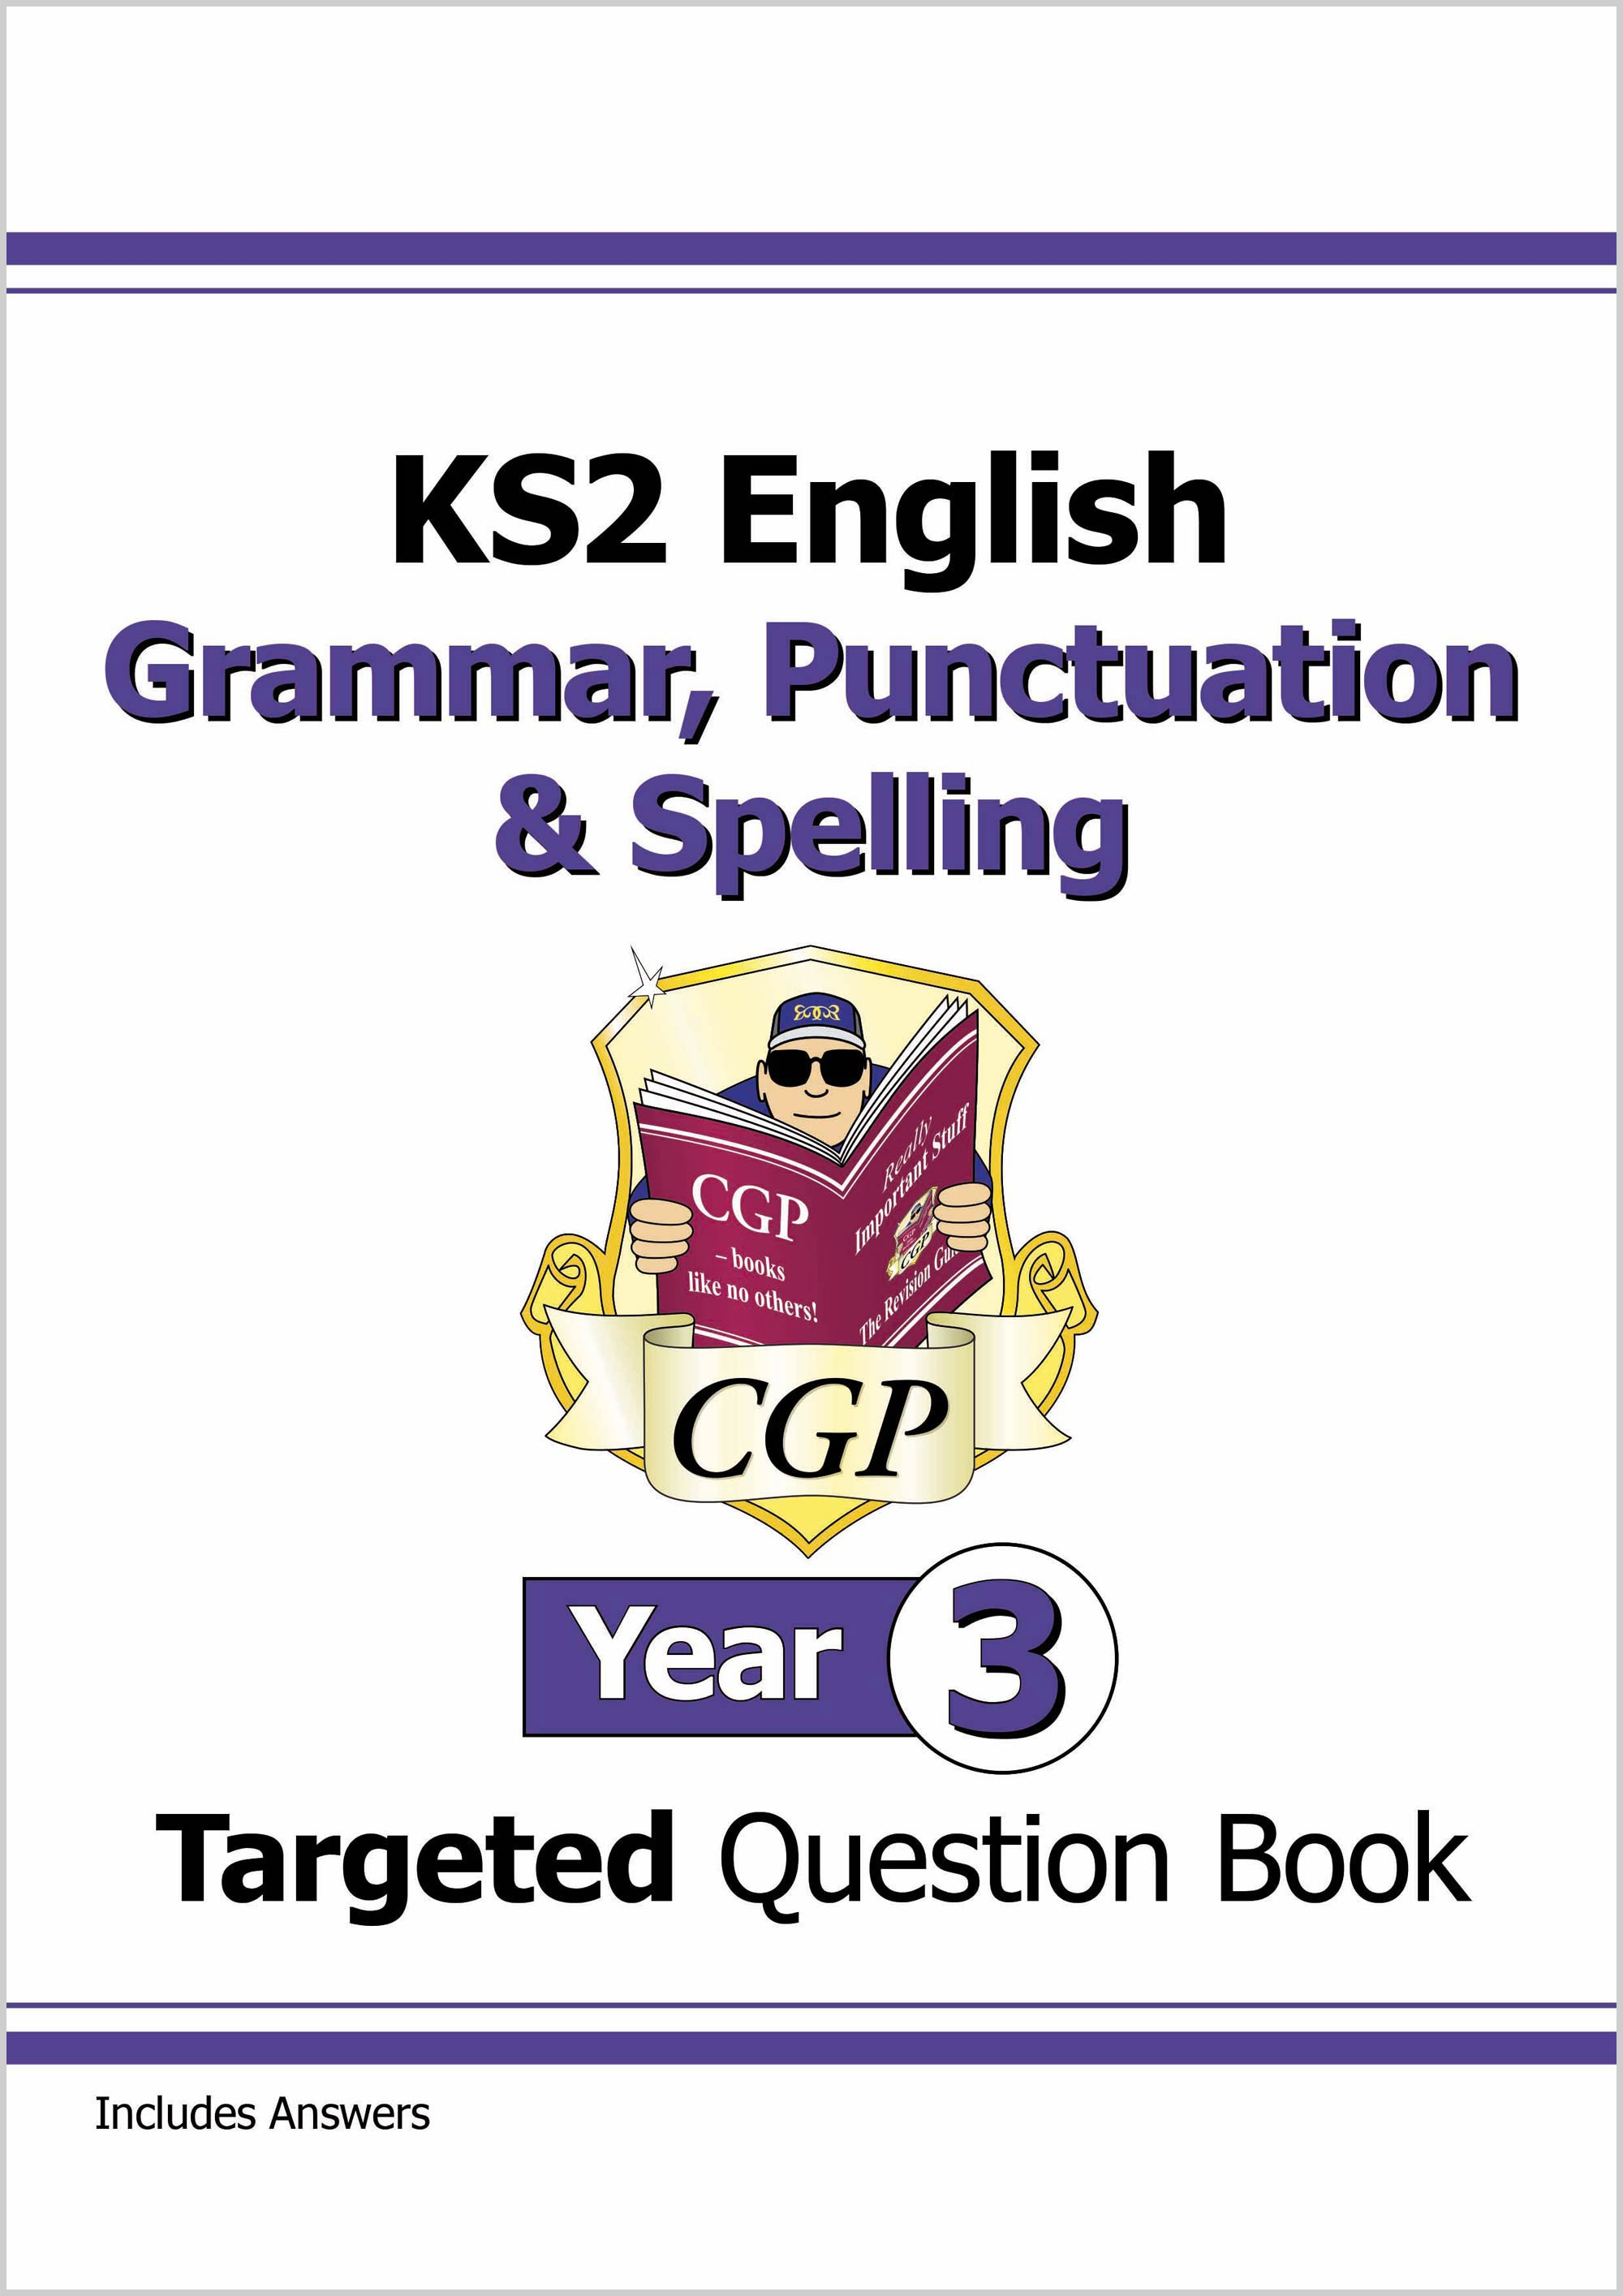 E3W22DK - KS2 English Targeted Question Book: Grammar, Punctuation & Spelling - Year 3